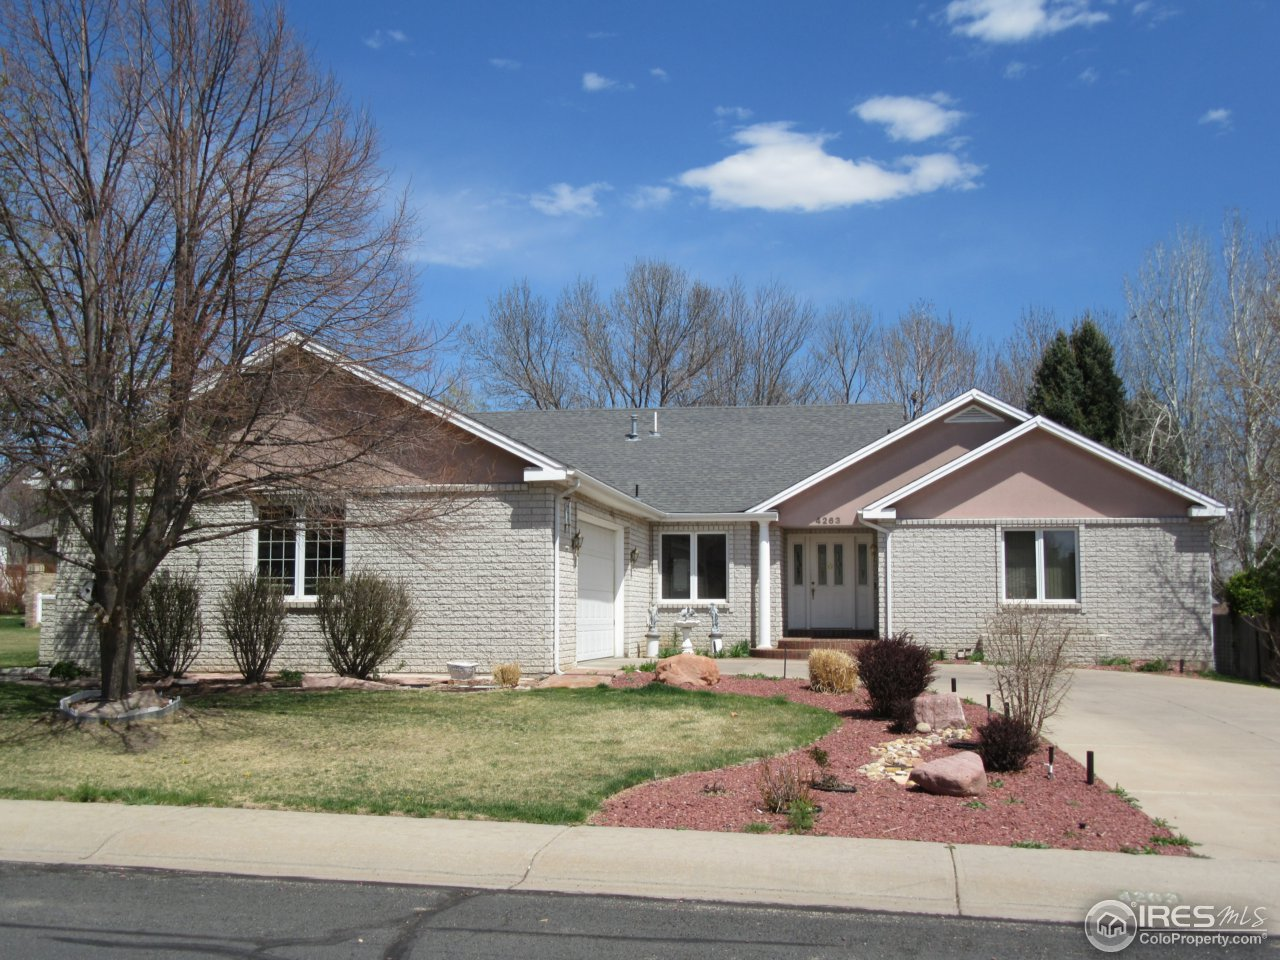 4263 W 14TH ST DR, GREELEY, CO 80634